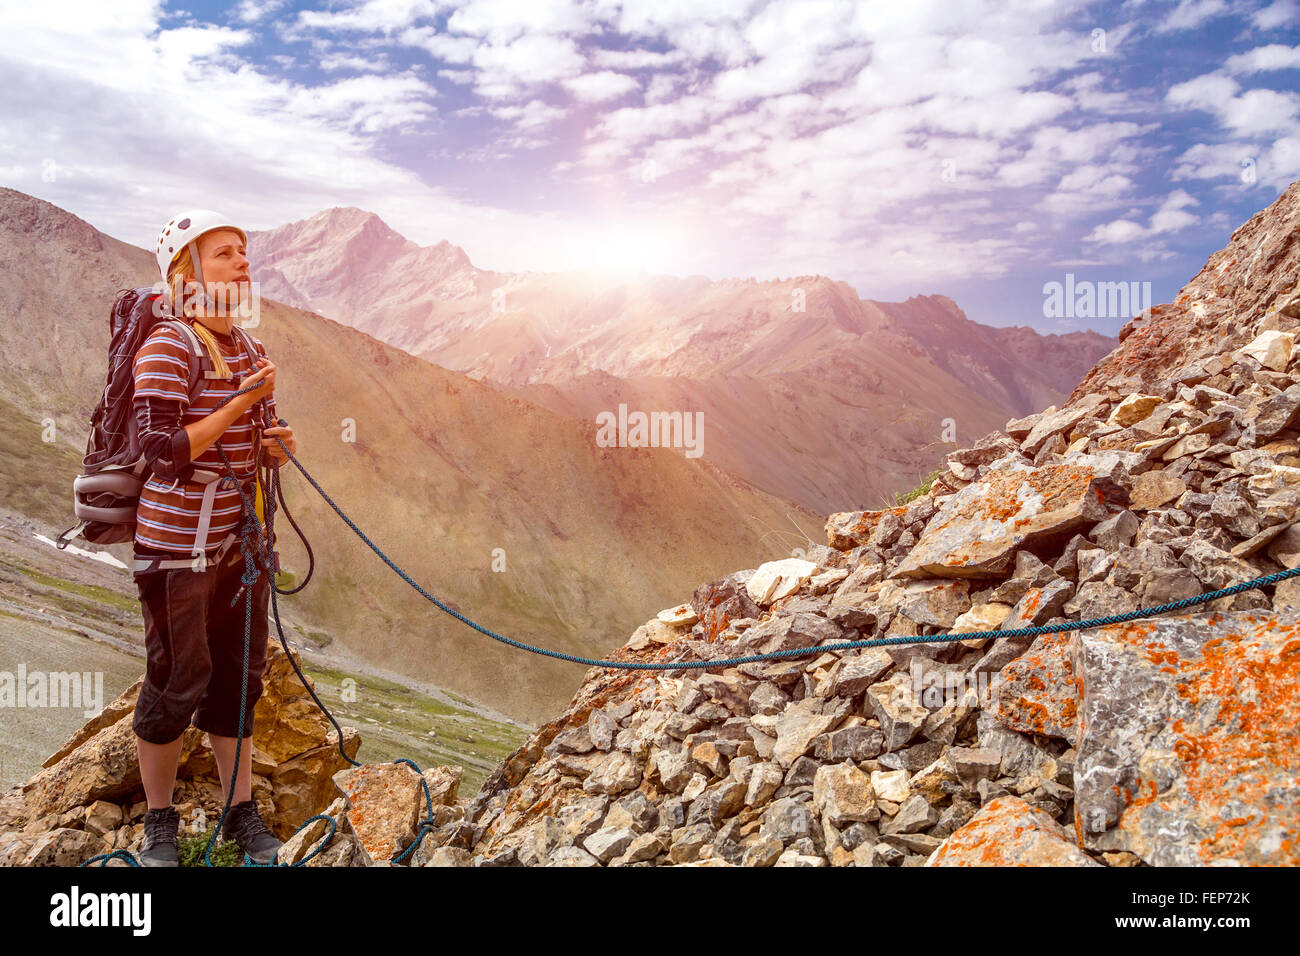 Mountain climber working with rope - Stock Image